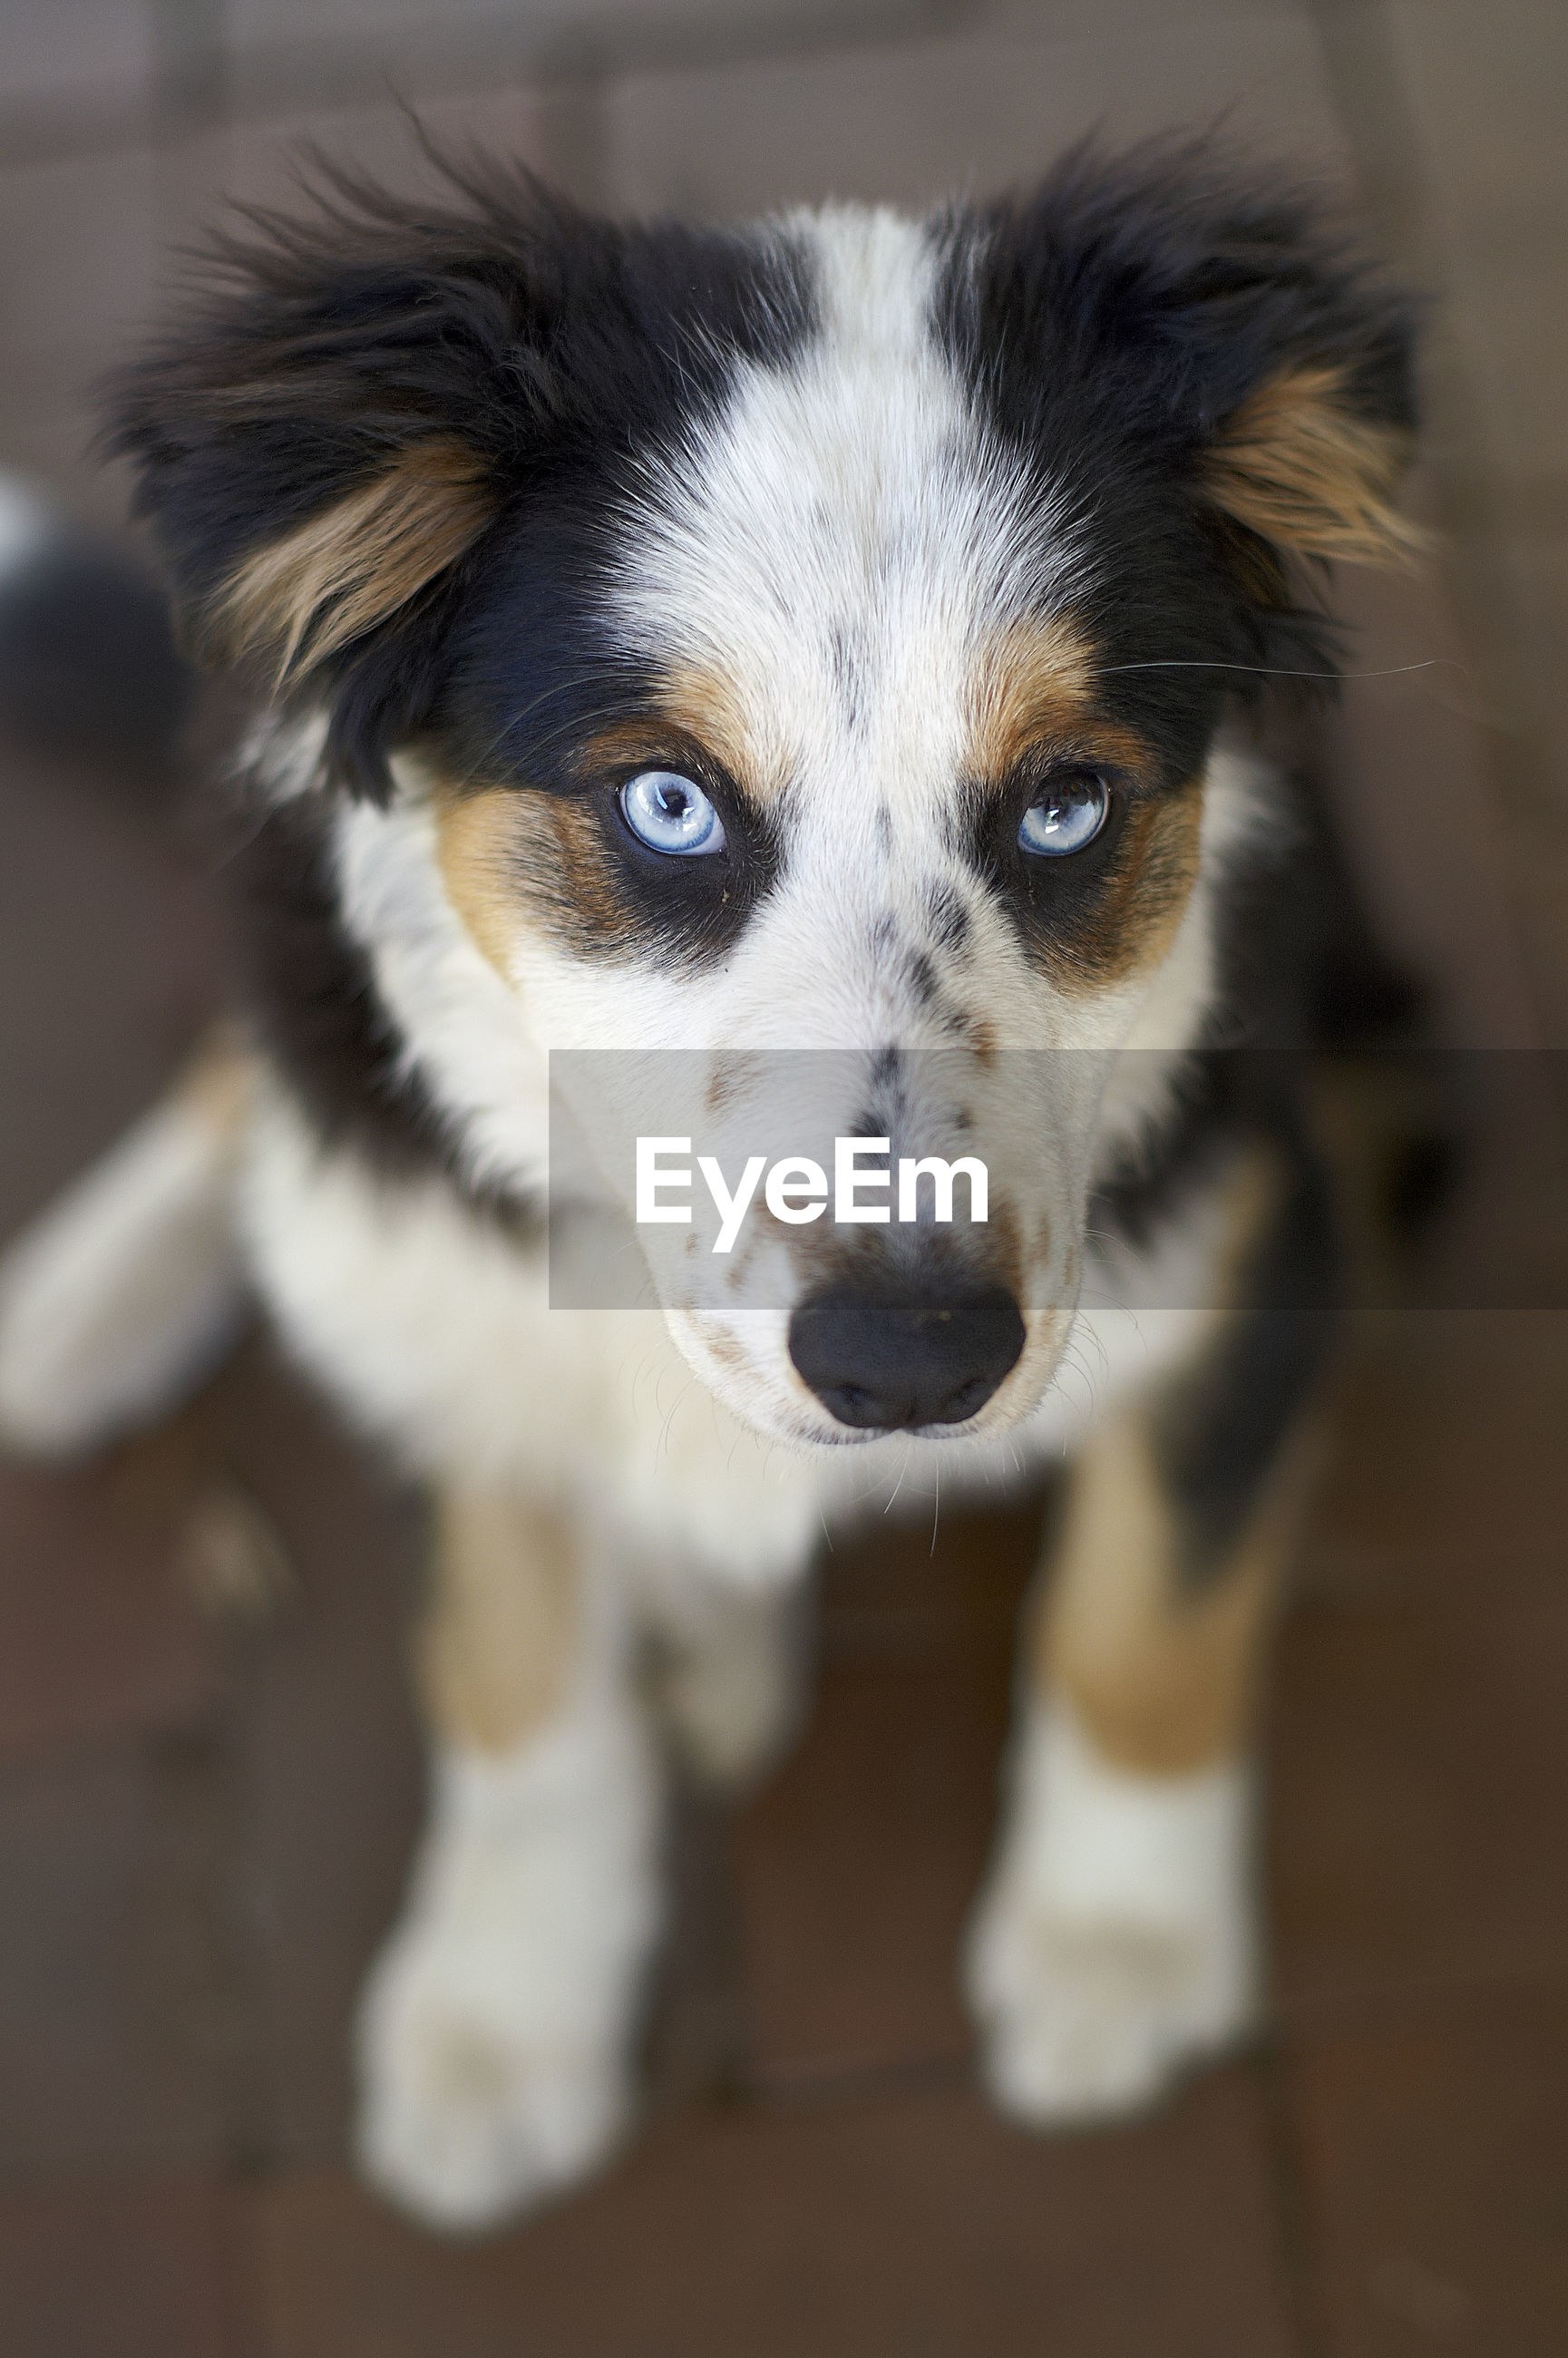 Close-up portrait of a tri-color border collie puppy dog, looking up at the camera with blue eyes.